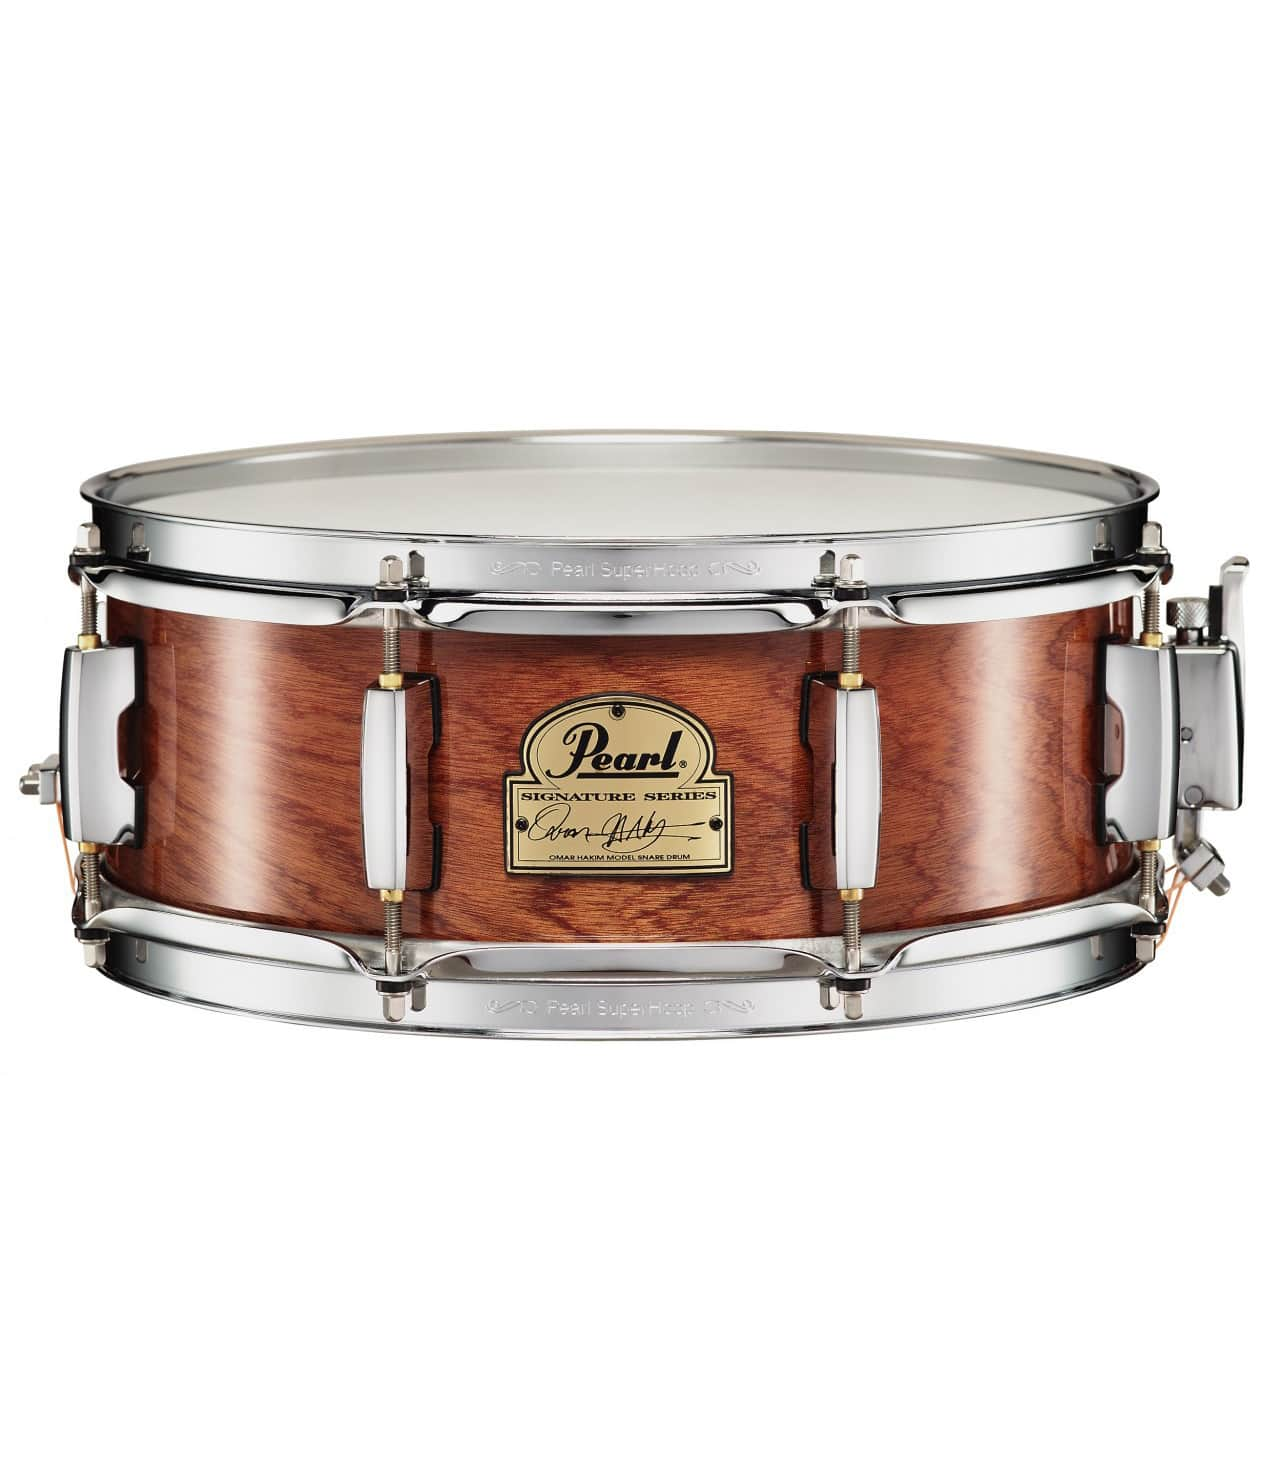 Pearl - OH1350 140 Omar Hakim 13x5 0 snare drum - Melody House Musical Instruments